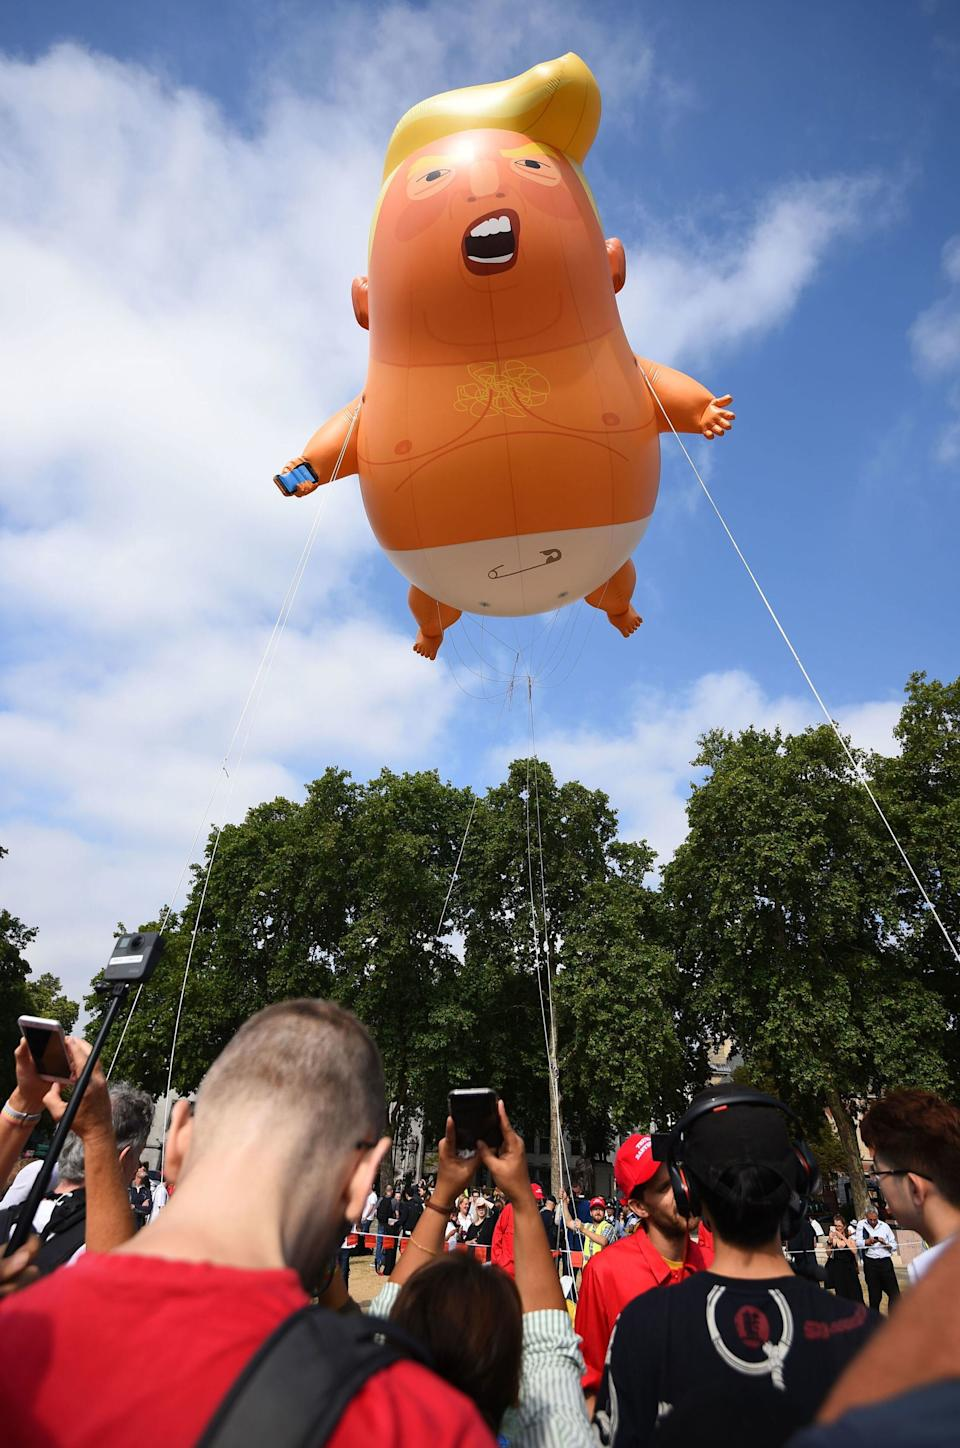 """Will the """"Trump Baby"""" blimp make an appearance in protests this week? (Picture: PA)"""